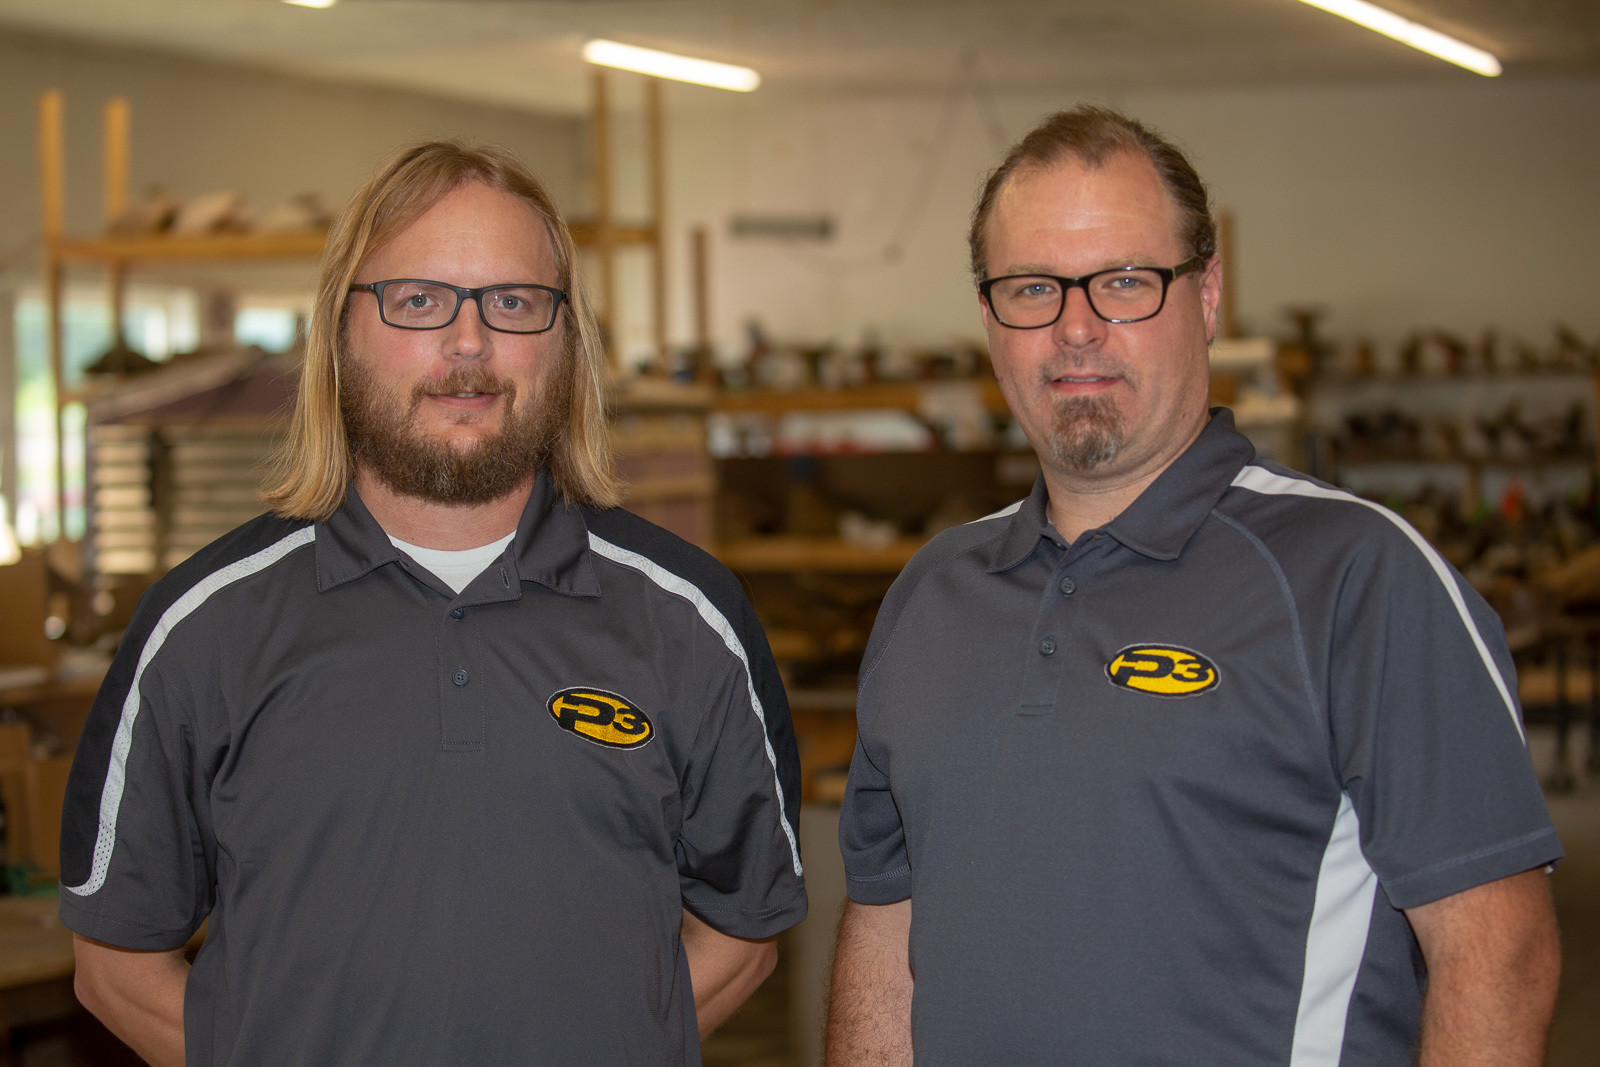 Above you'll find the CEO, Jamin Jones (left); and Project Manager, Adam Angelona (right).